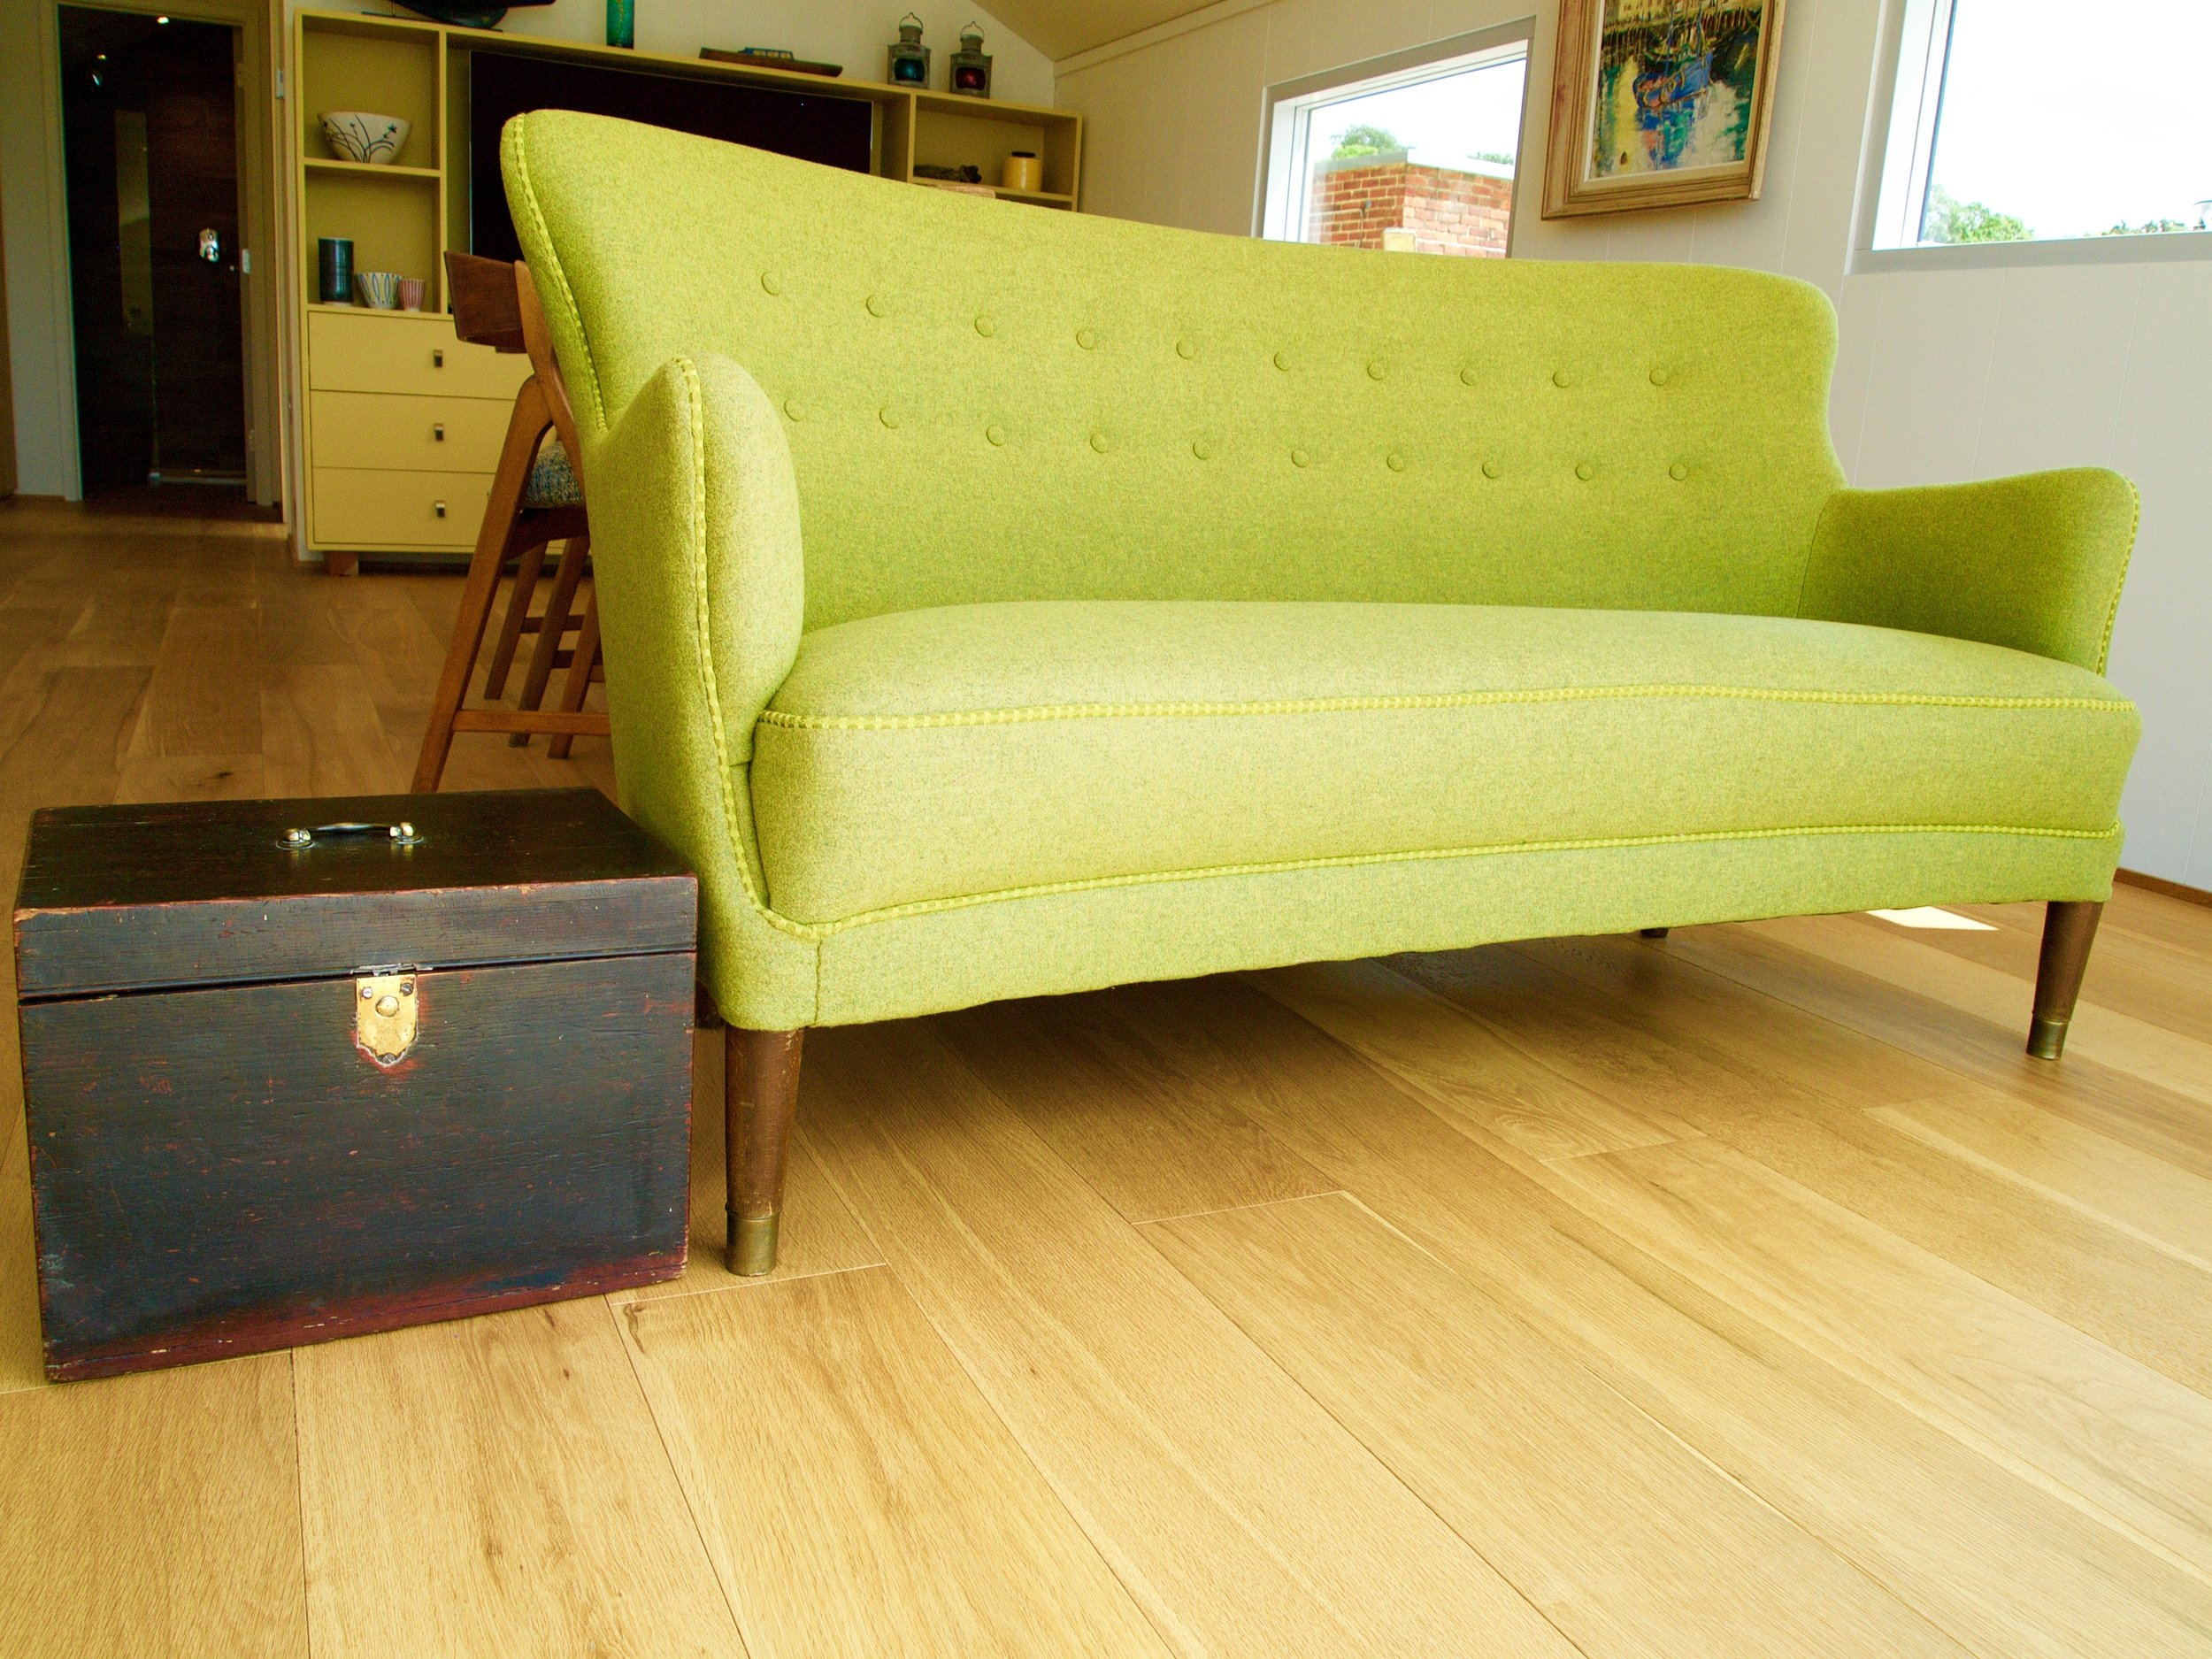 Up-cycled Mid Century sofa to watch the River Thames go by.